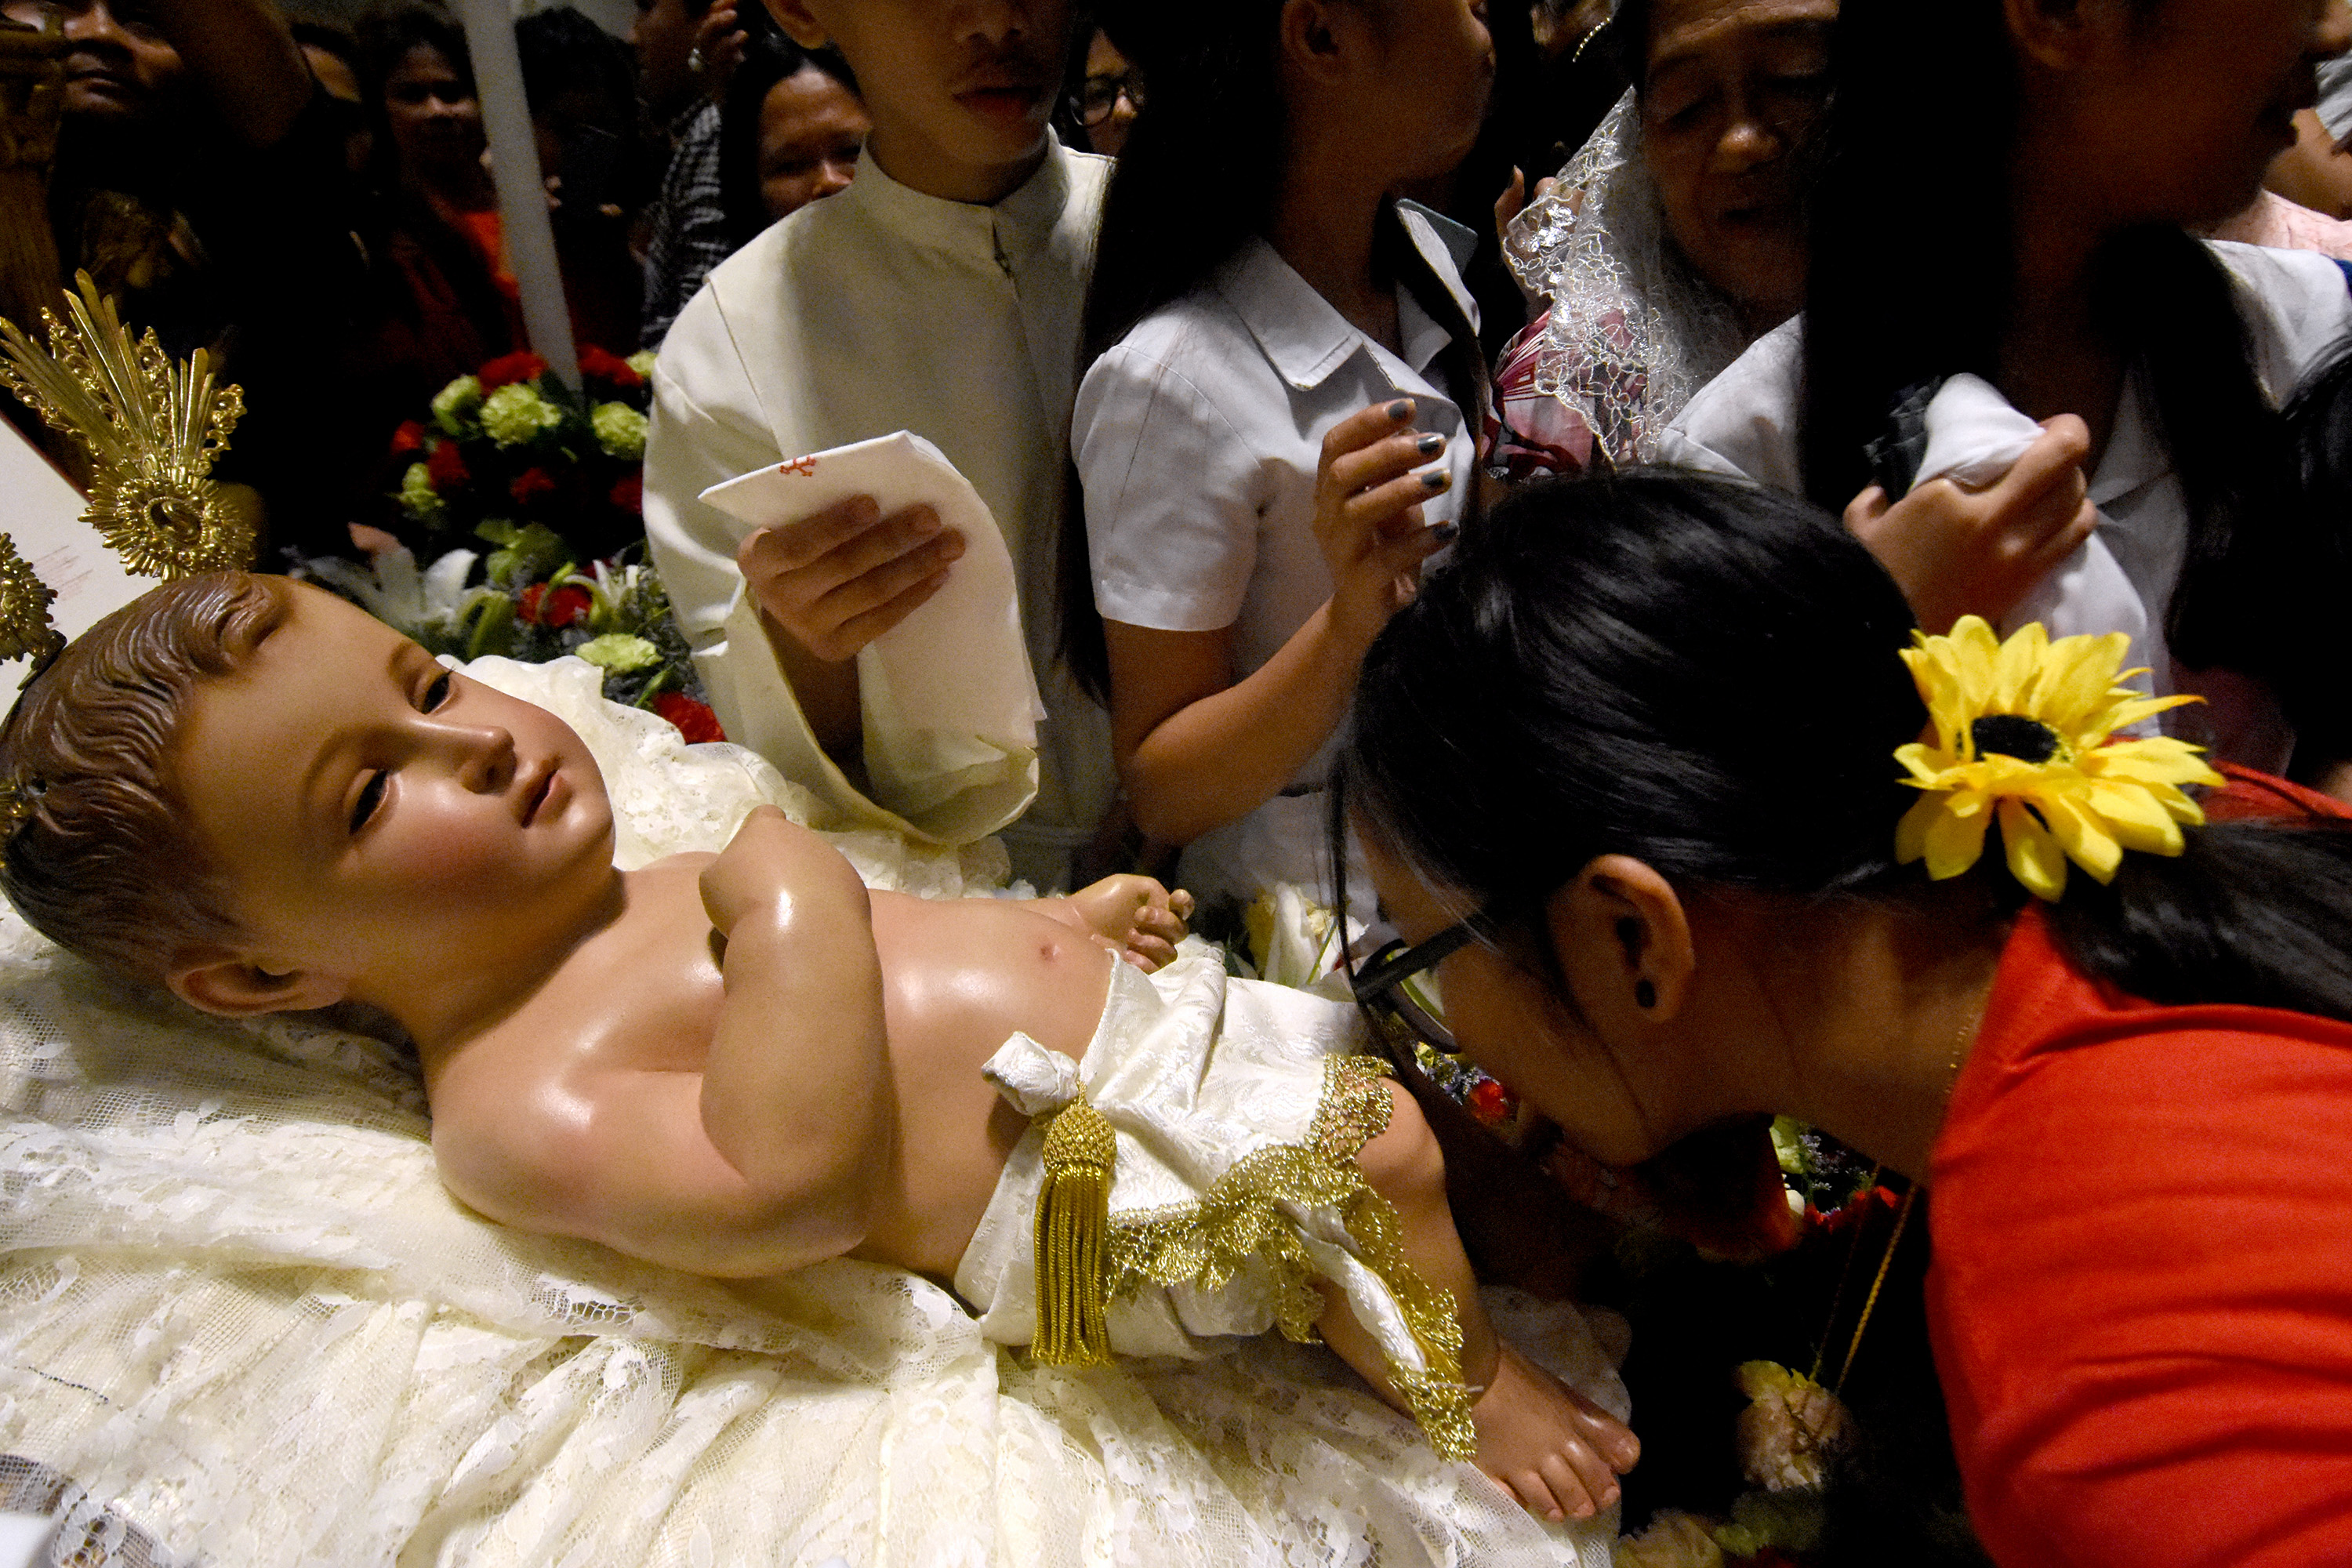 JOY, GOODWILL. Catholics line up to kiss the image of the Baby Jesus during the Christmas Eve Mass at the Manila Cathedral on December 24, 2017. Photo by Angie de Silva/Rappler